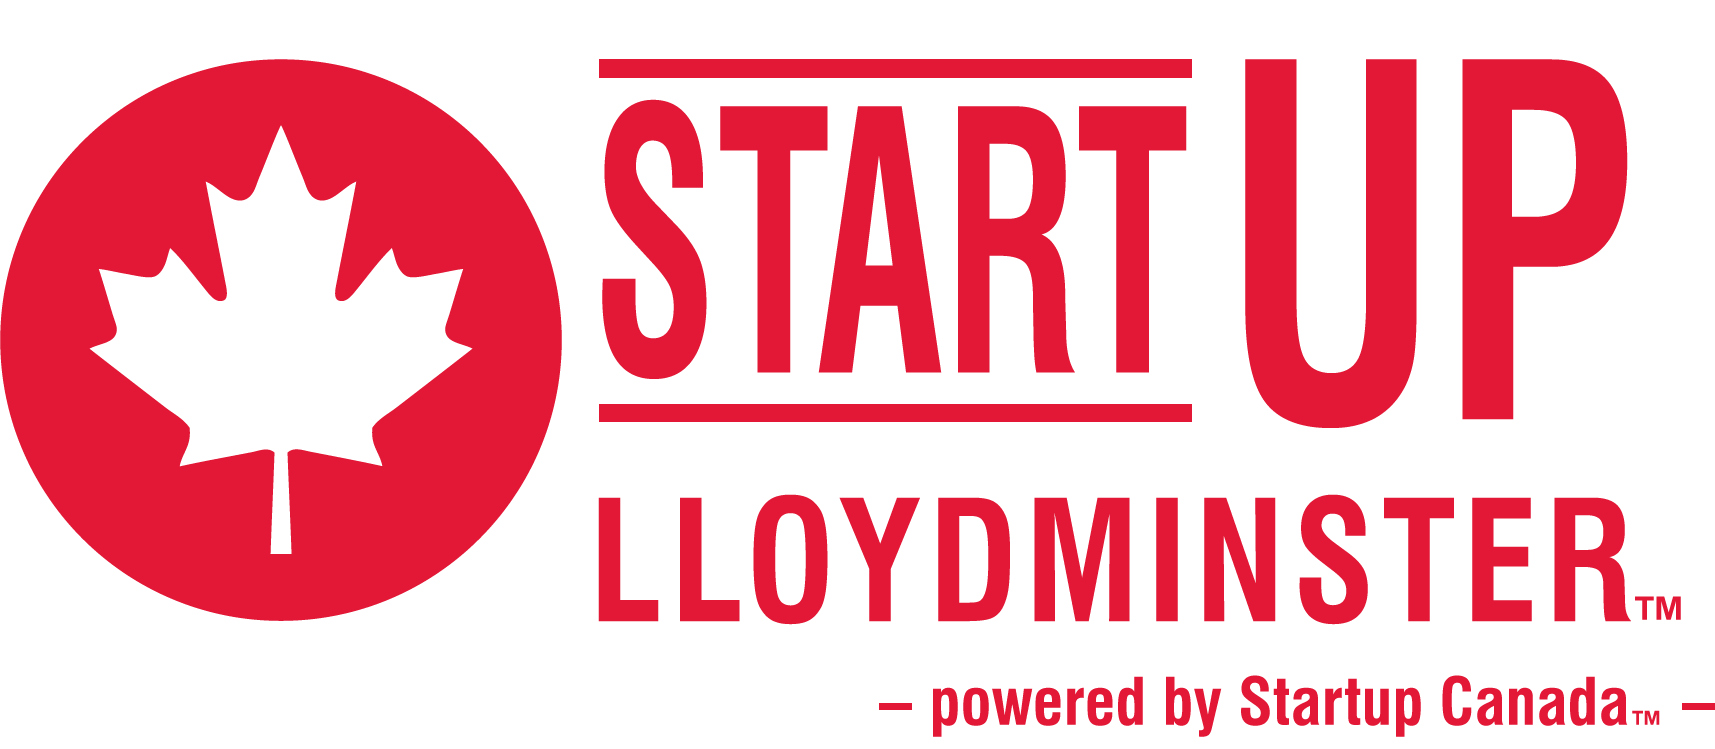 startup_lloydminster_color_large.png